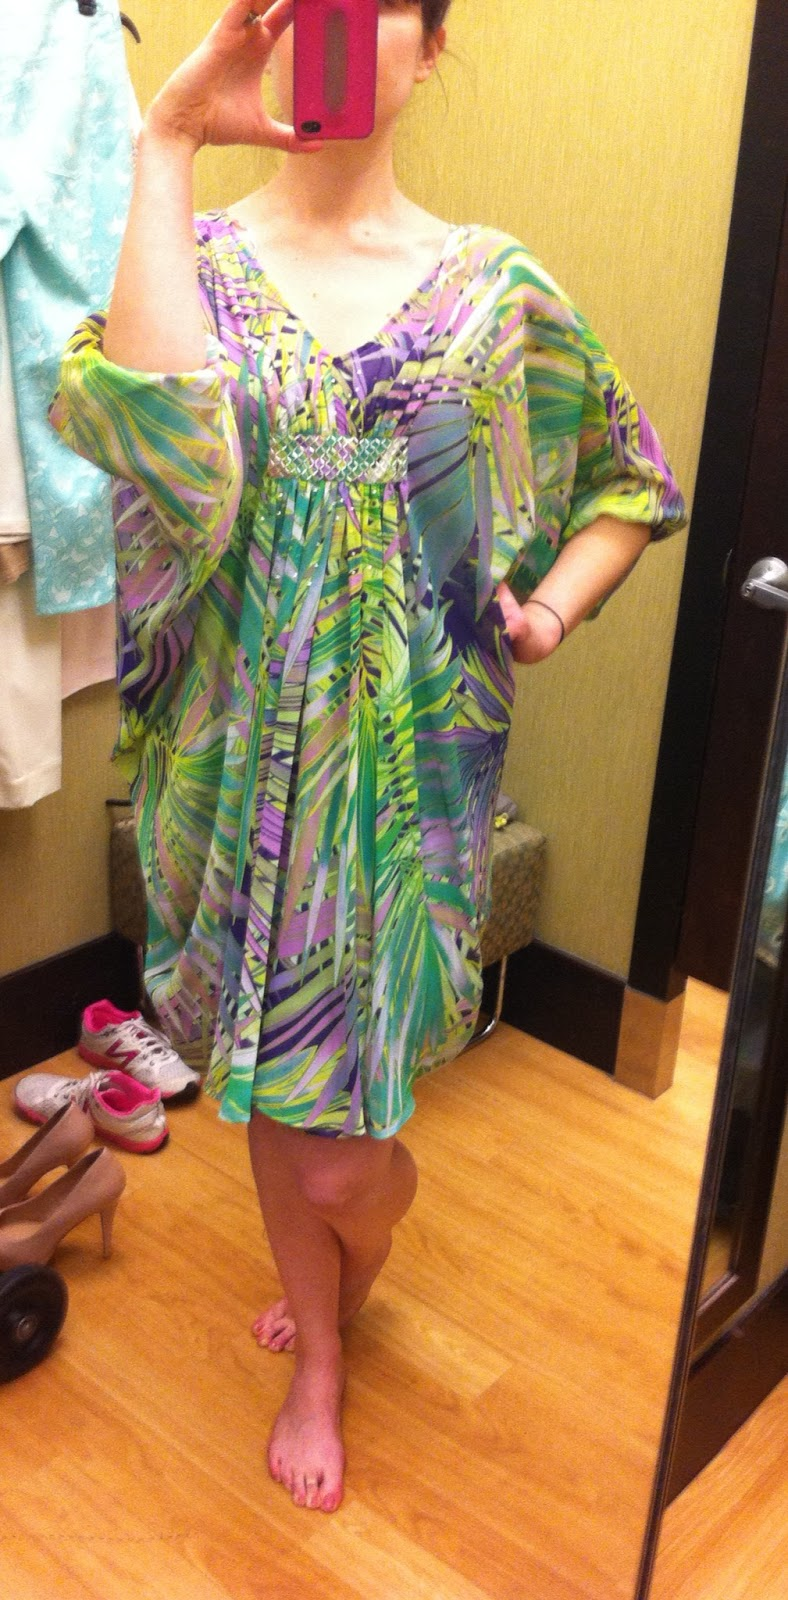 I Know Am Crazy But Love This Short Caftan Dress It Is So Summery Ready For A Beach Pool Party Tropical Wonderfulness